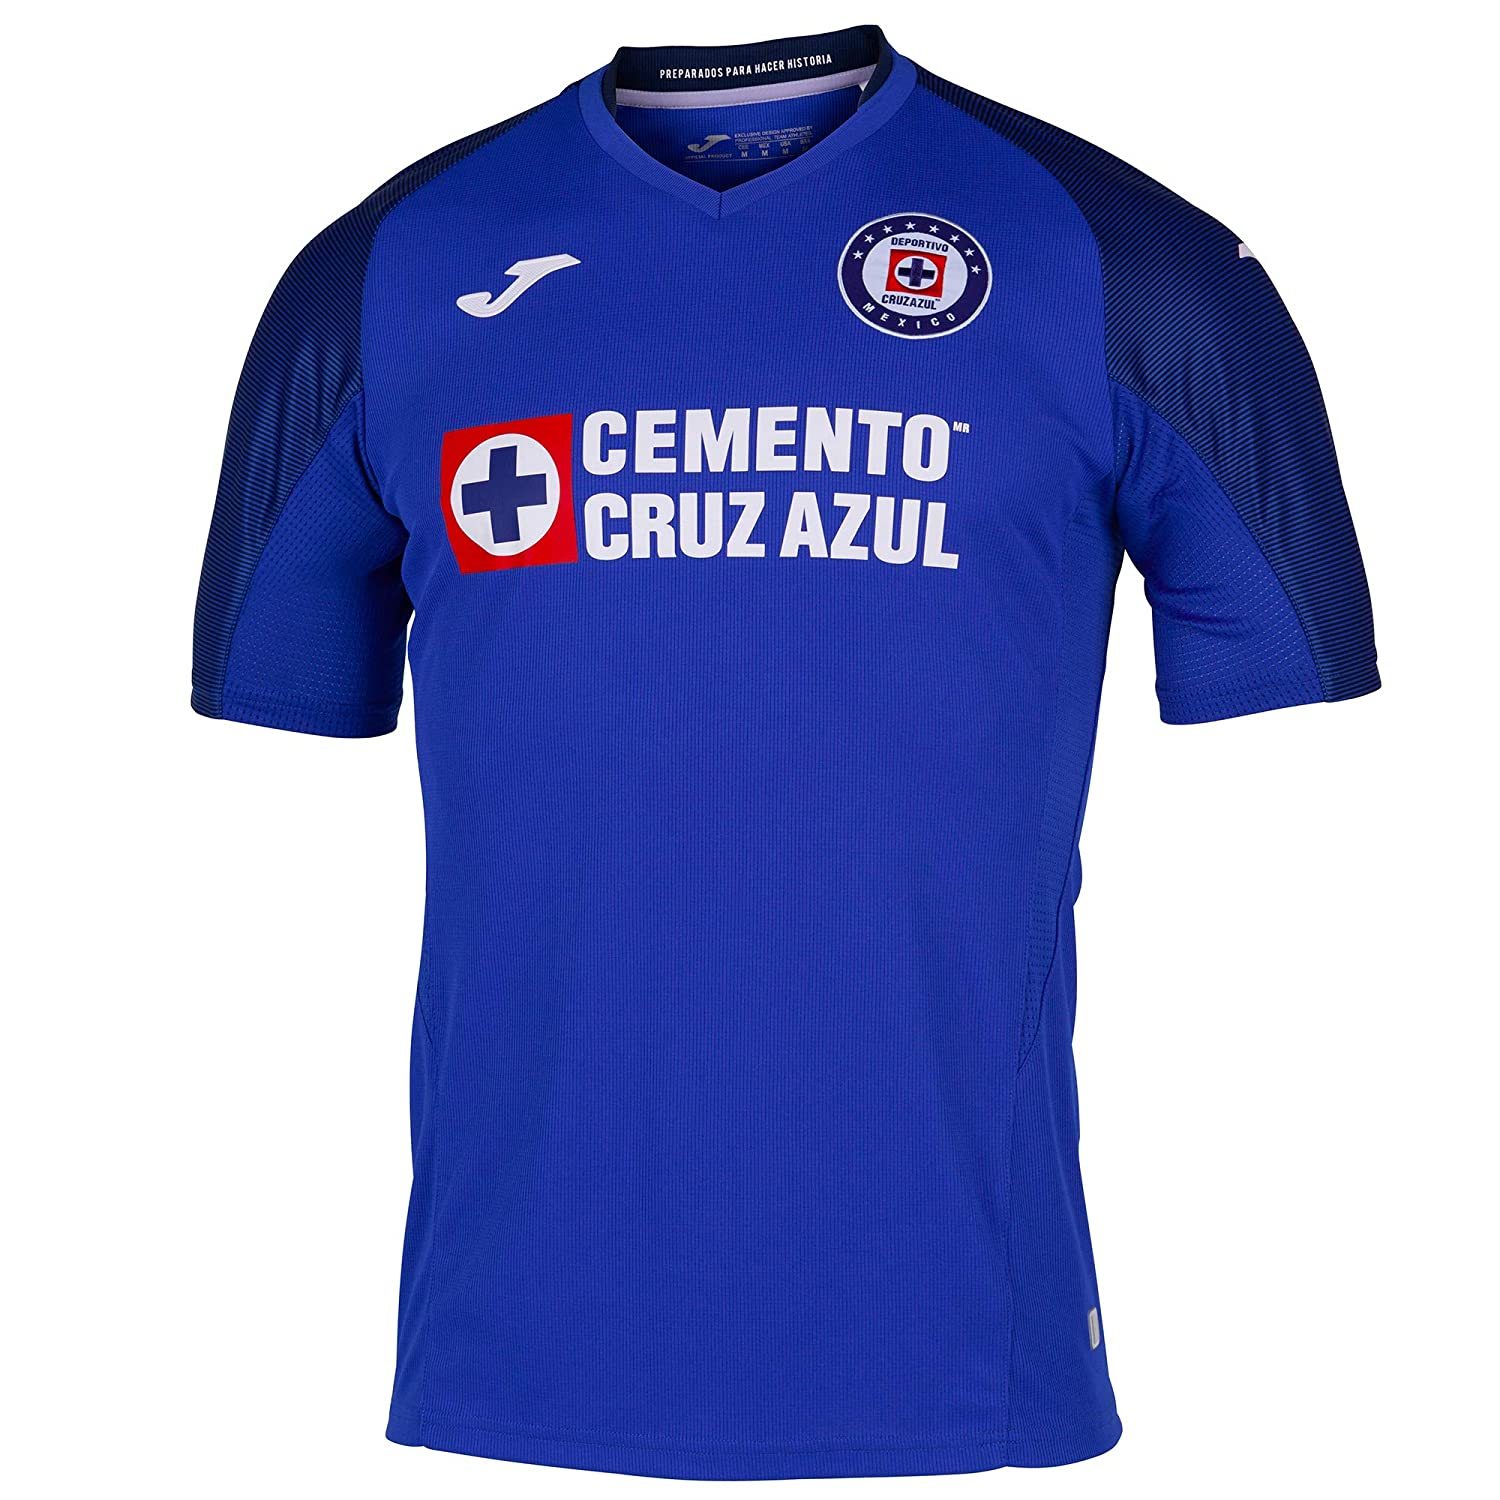 Amazon.com: Joma 2019/2020 Cruz Azul Jerseys: Sports & Outdoors